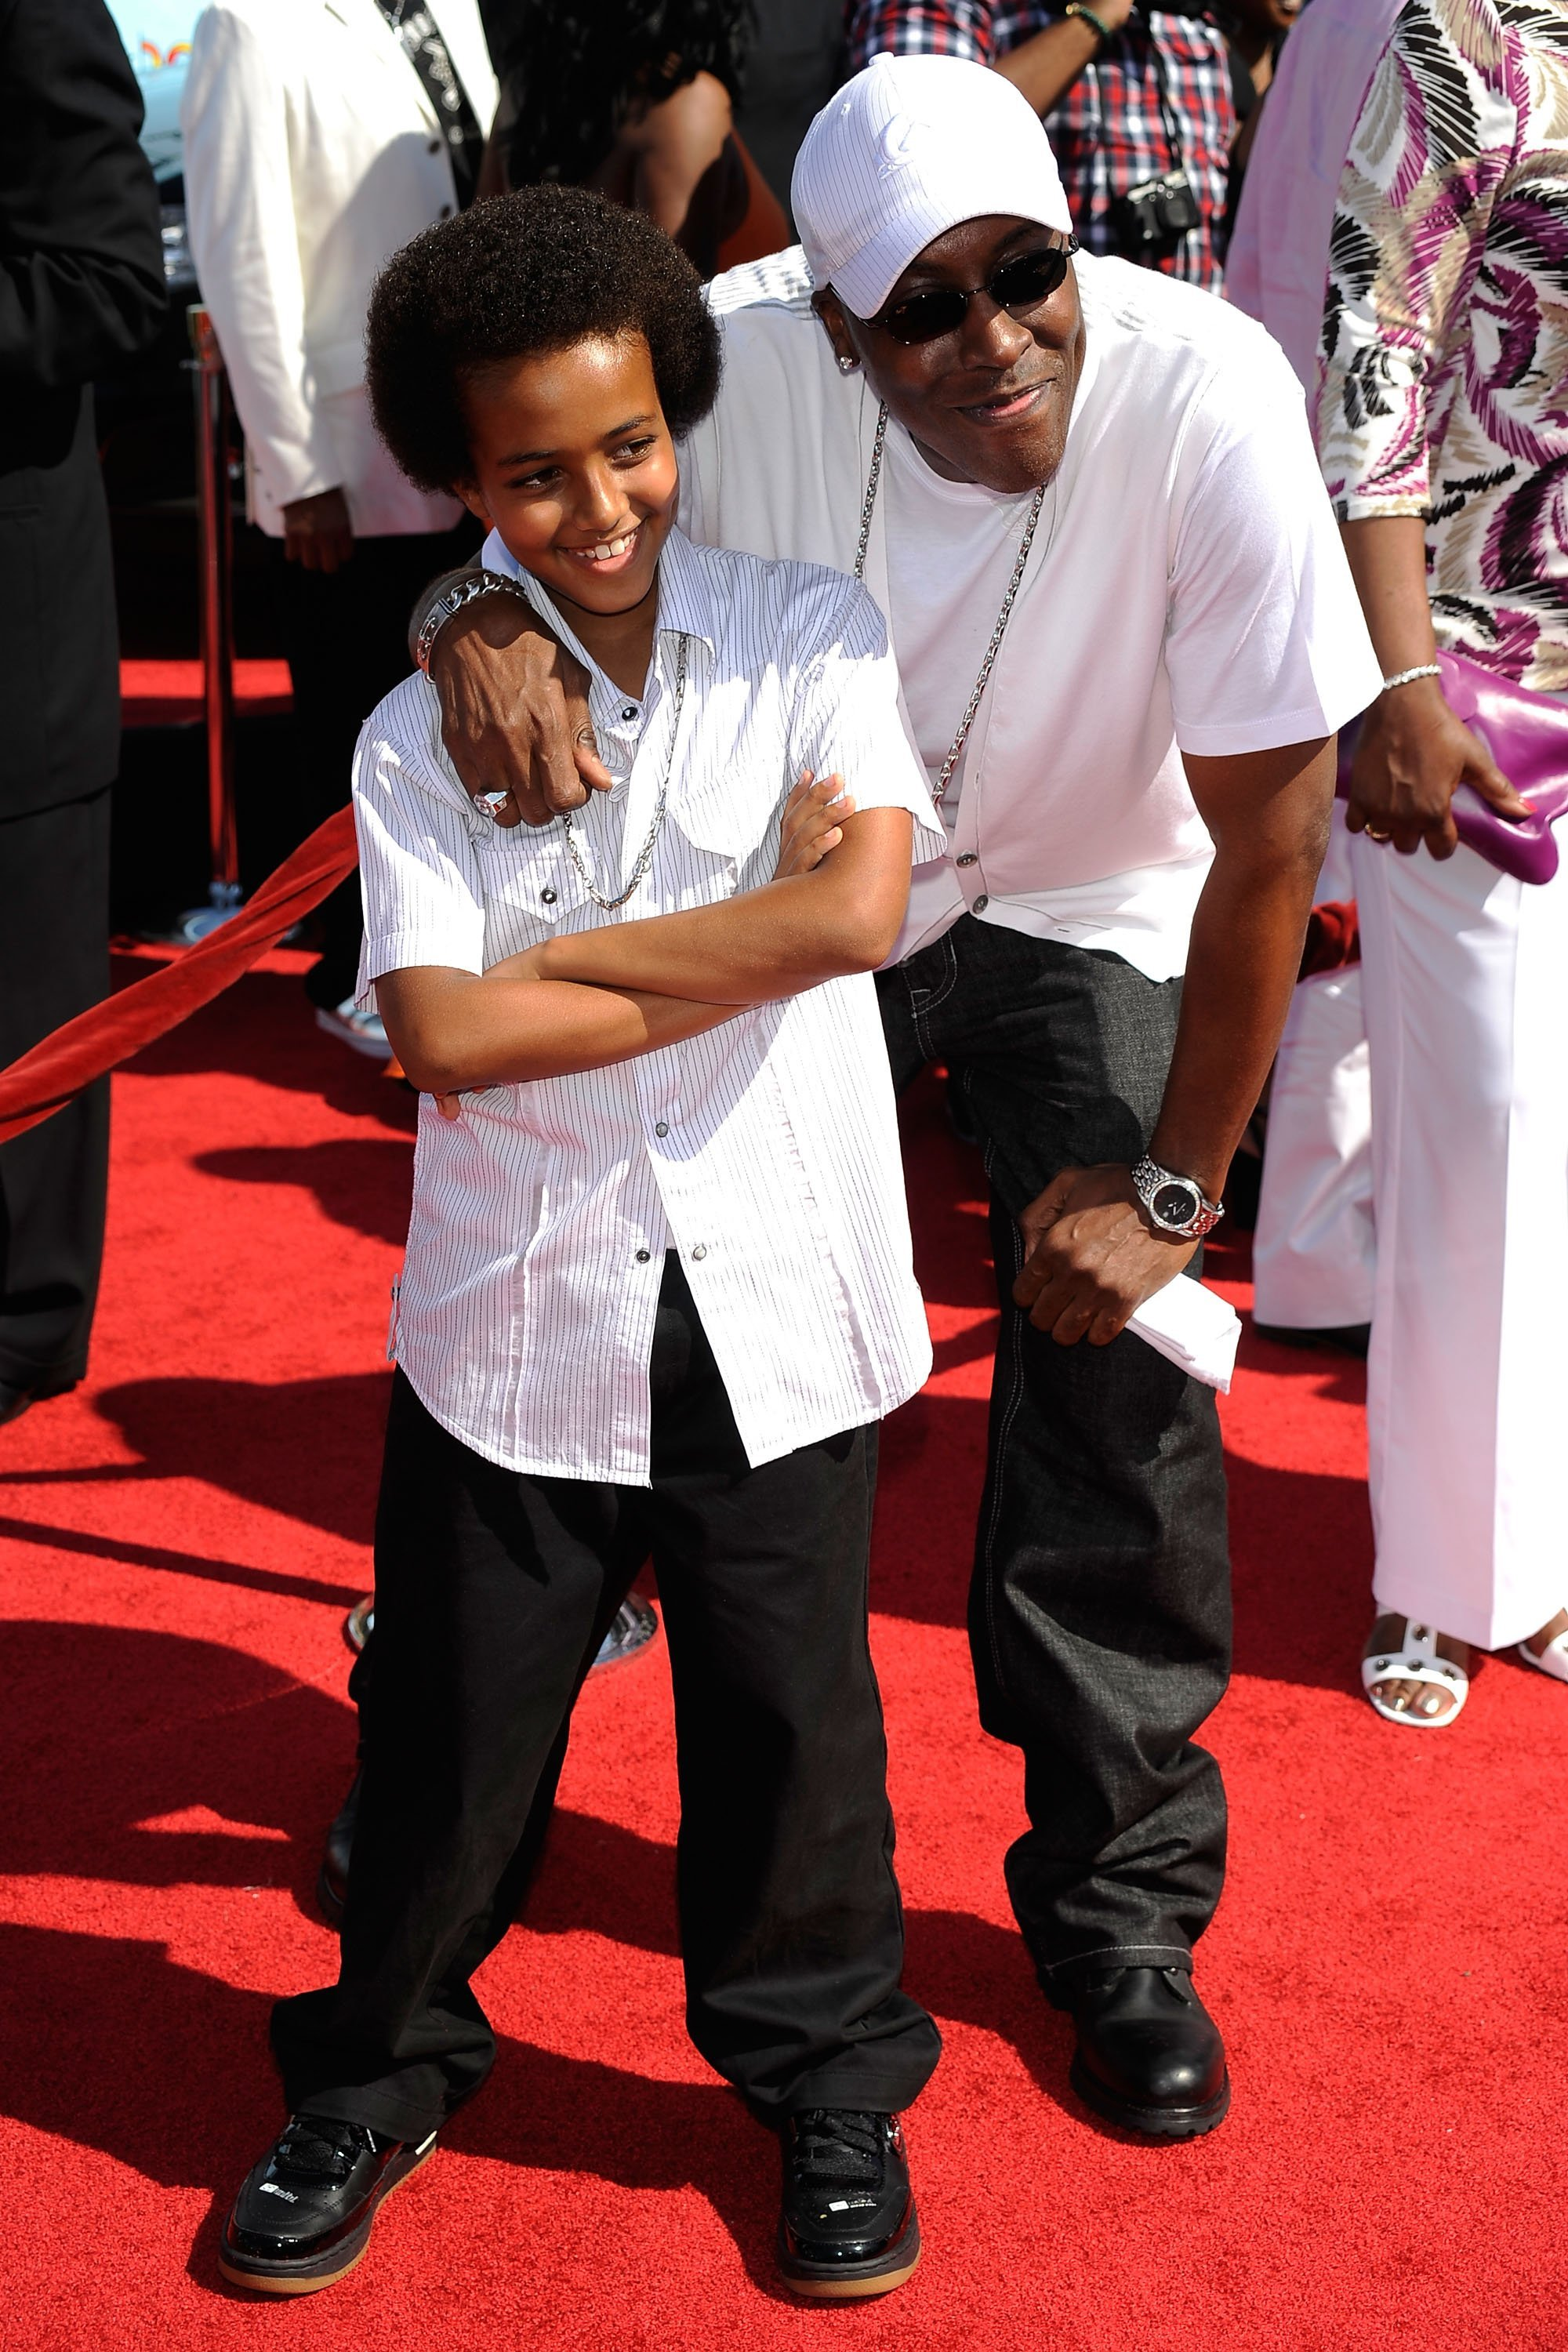 Arsenio Hall and son Arsenio Hall Jr. at the 2009 BET Awards on June 28, 2009 | Photo: Getty Images